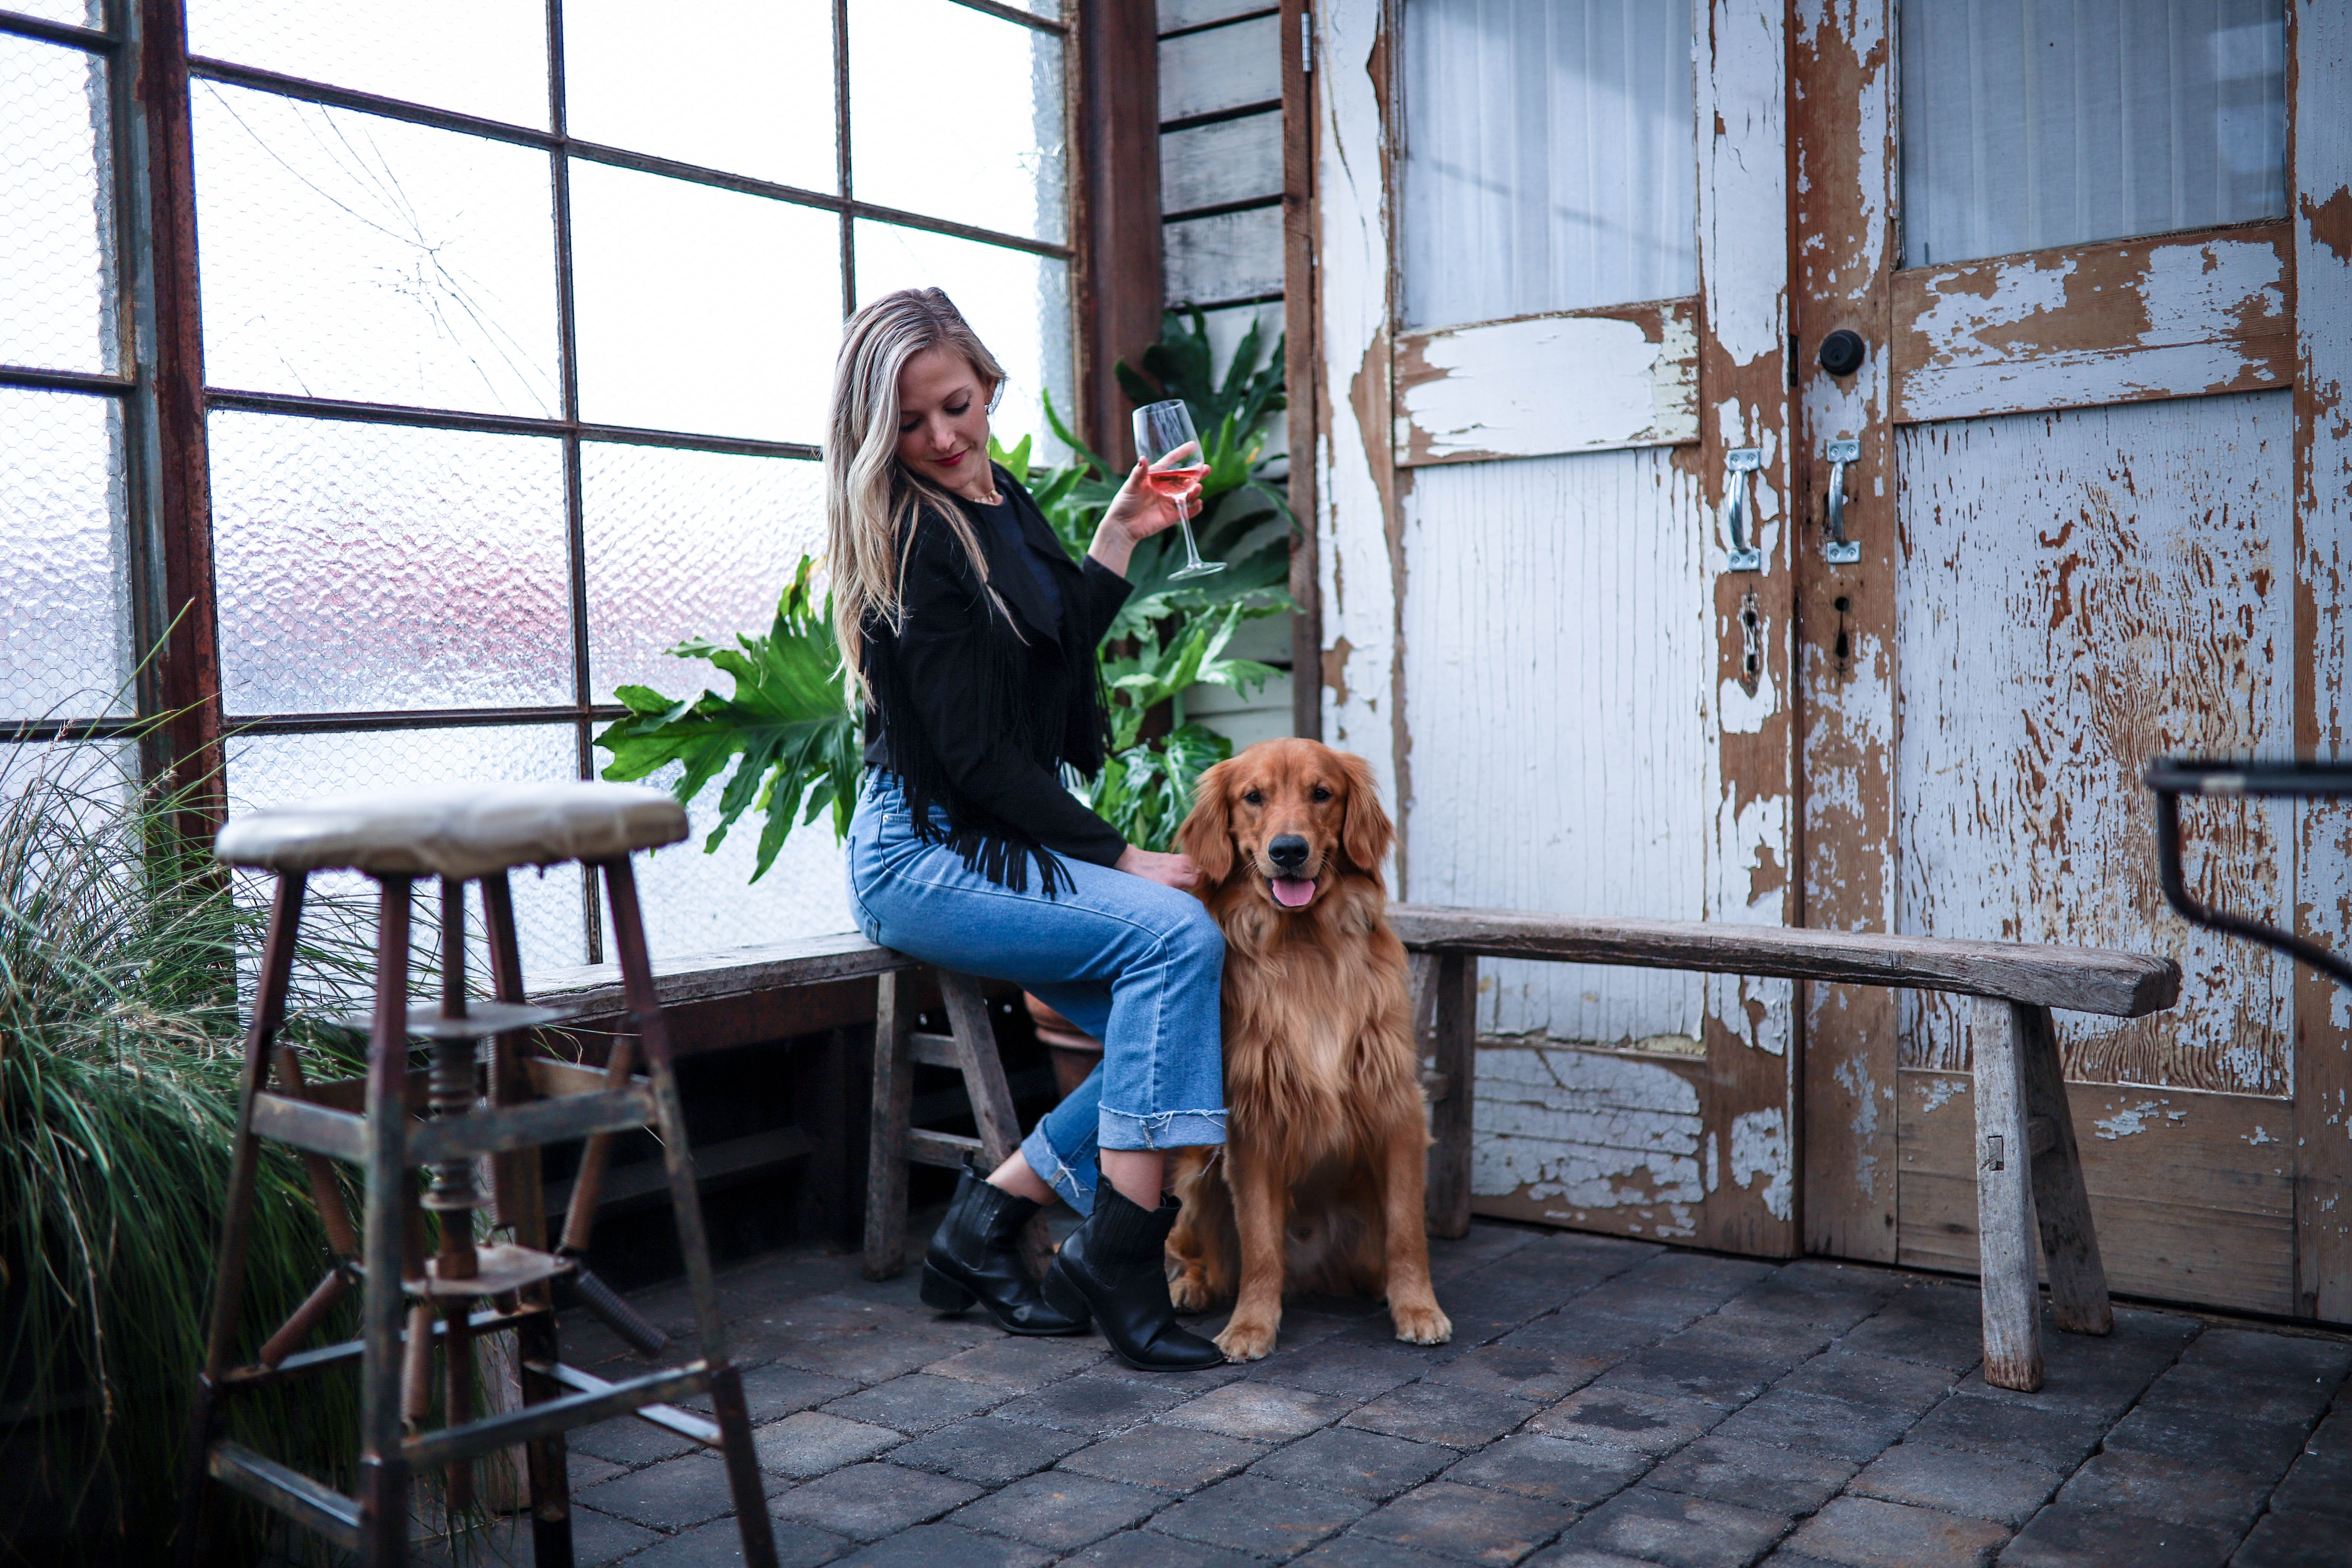 daily-wag-5-dog-friendly-bars-in-houston-your-pup-should-visit-hero-image